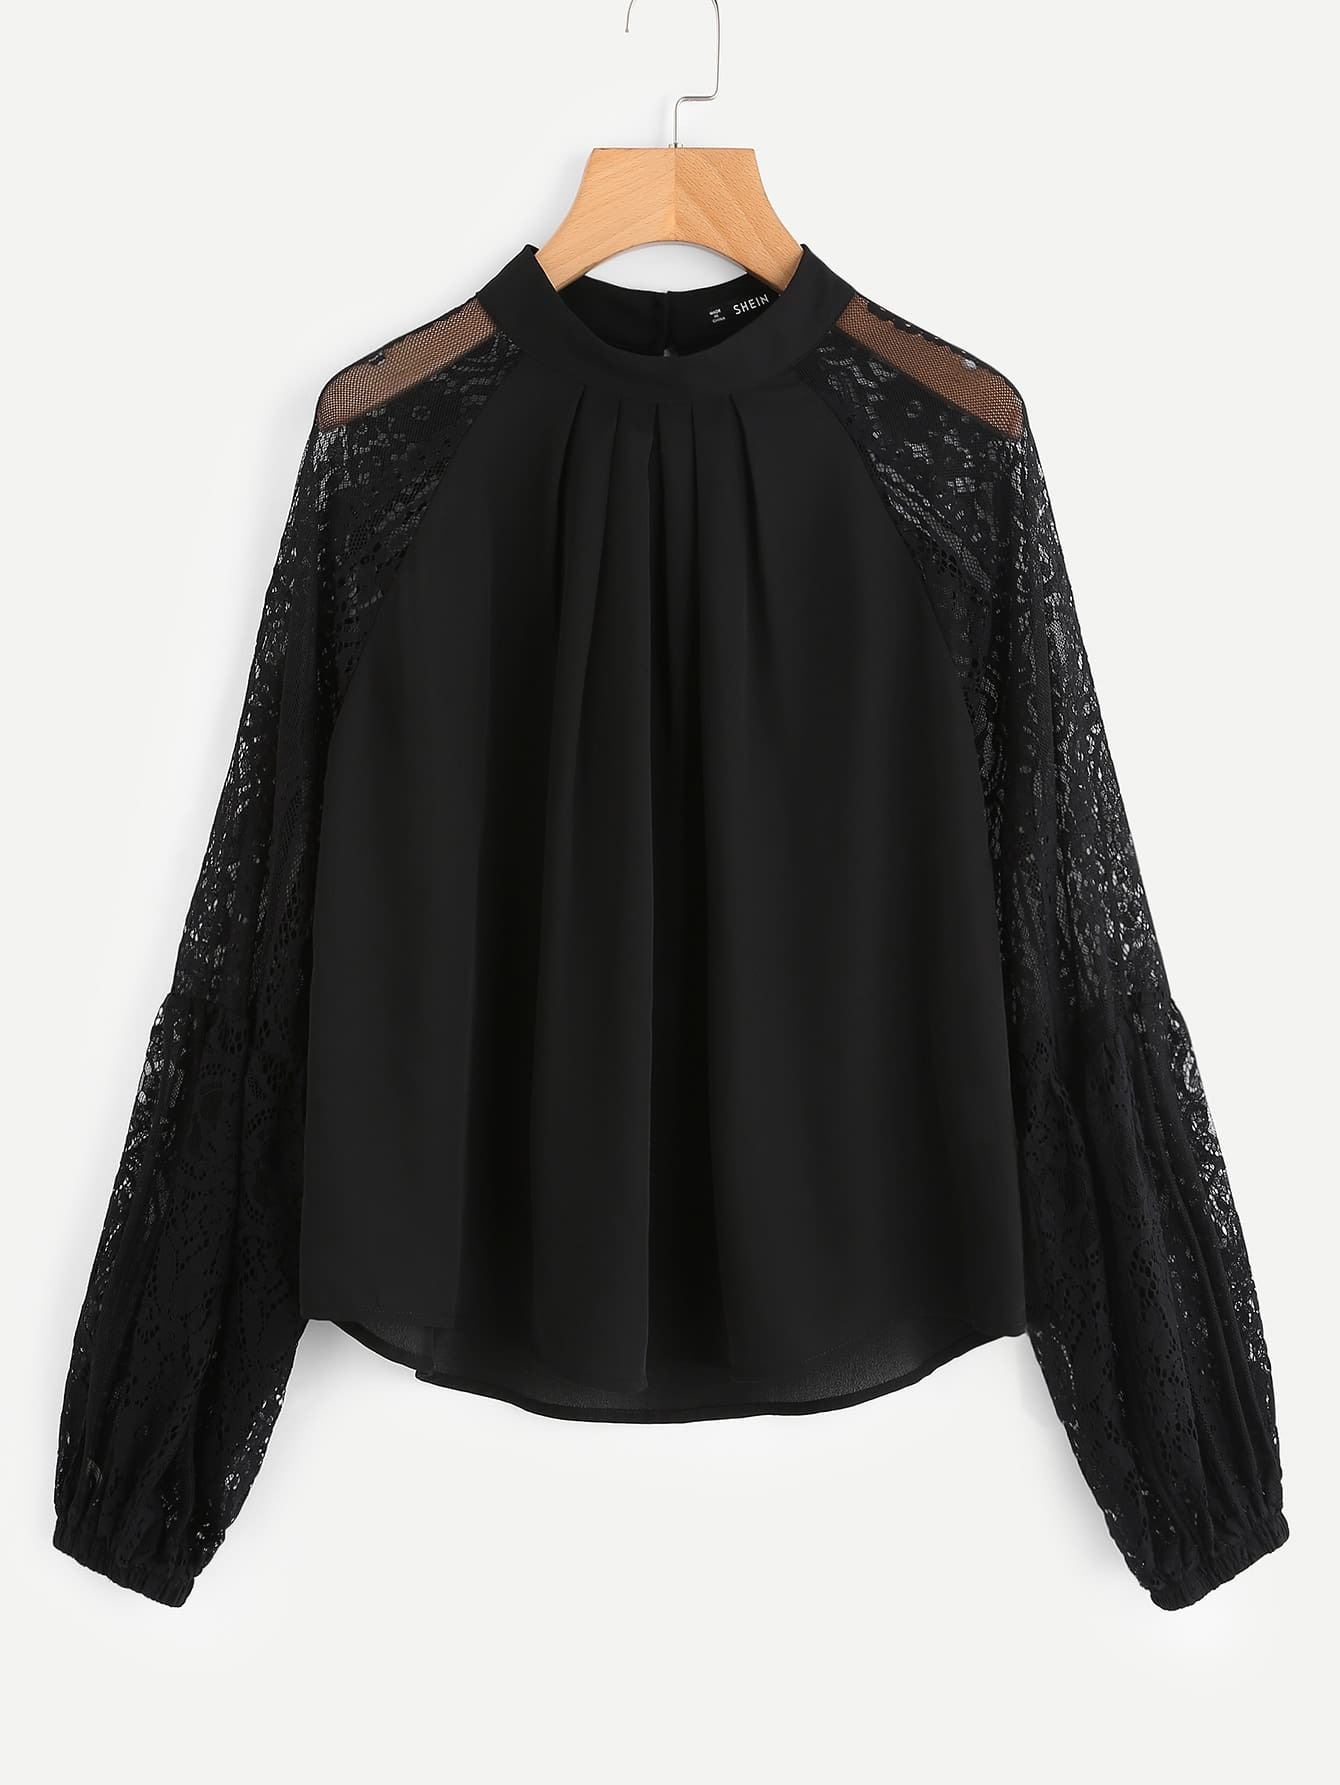 Lace Sleeve Boxed Pleated Top boxed pleated bishop sleeve tunic top